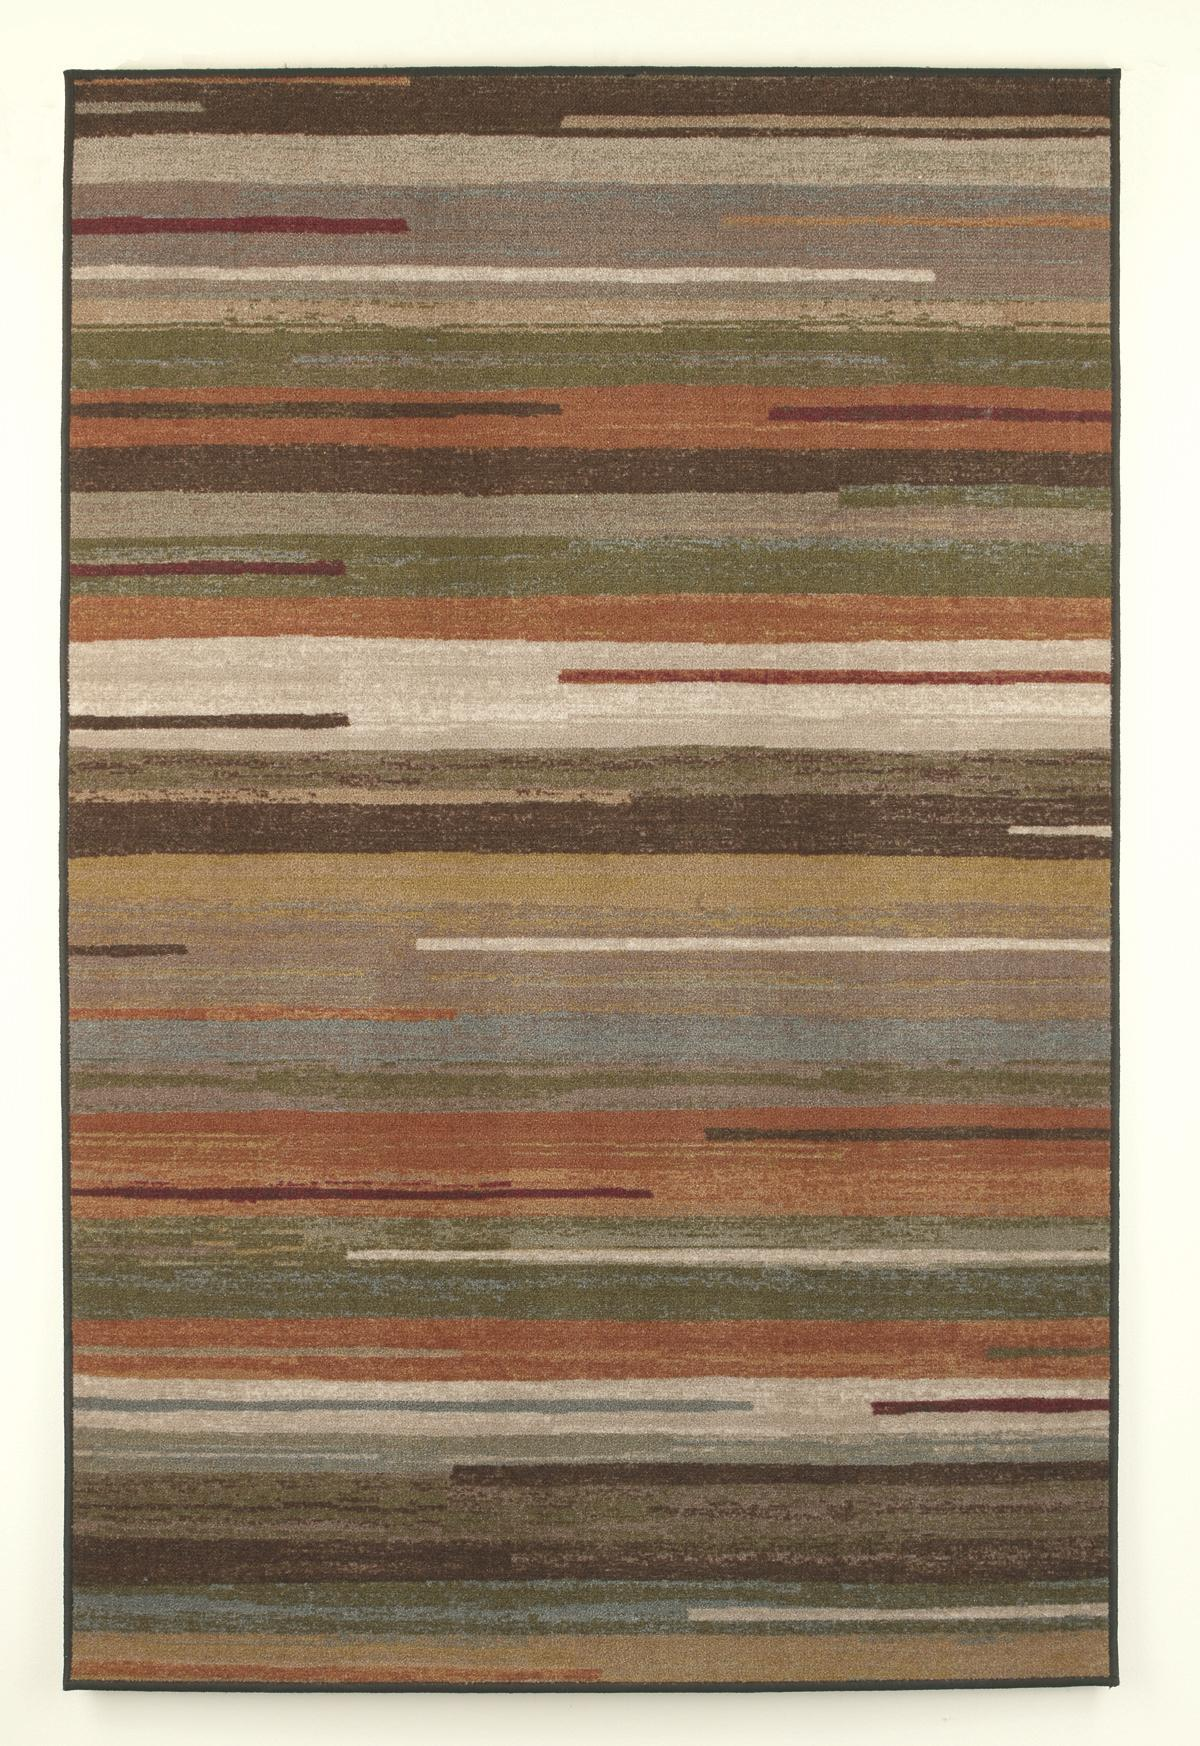 Signature Design by Ashley Contemporary Area Rugs Declan - Multi Small Rug - Item Number: R334002